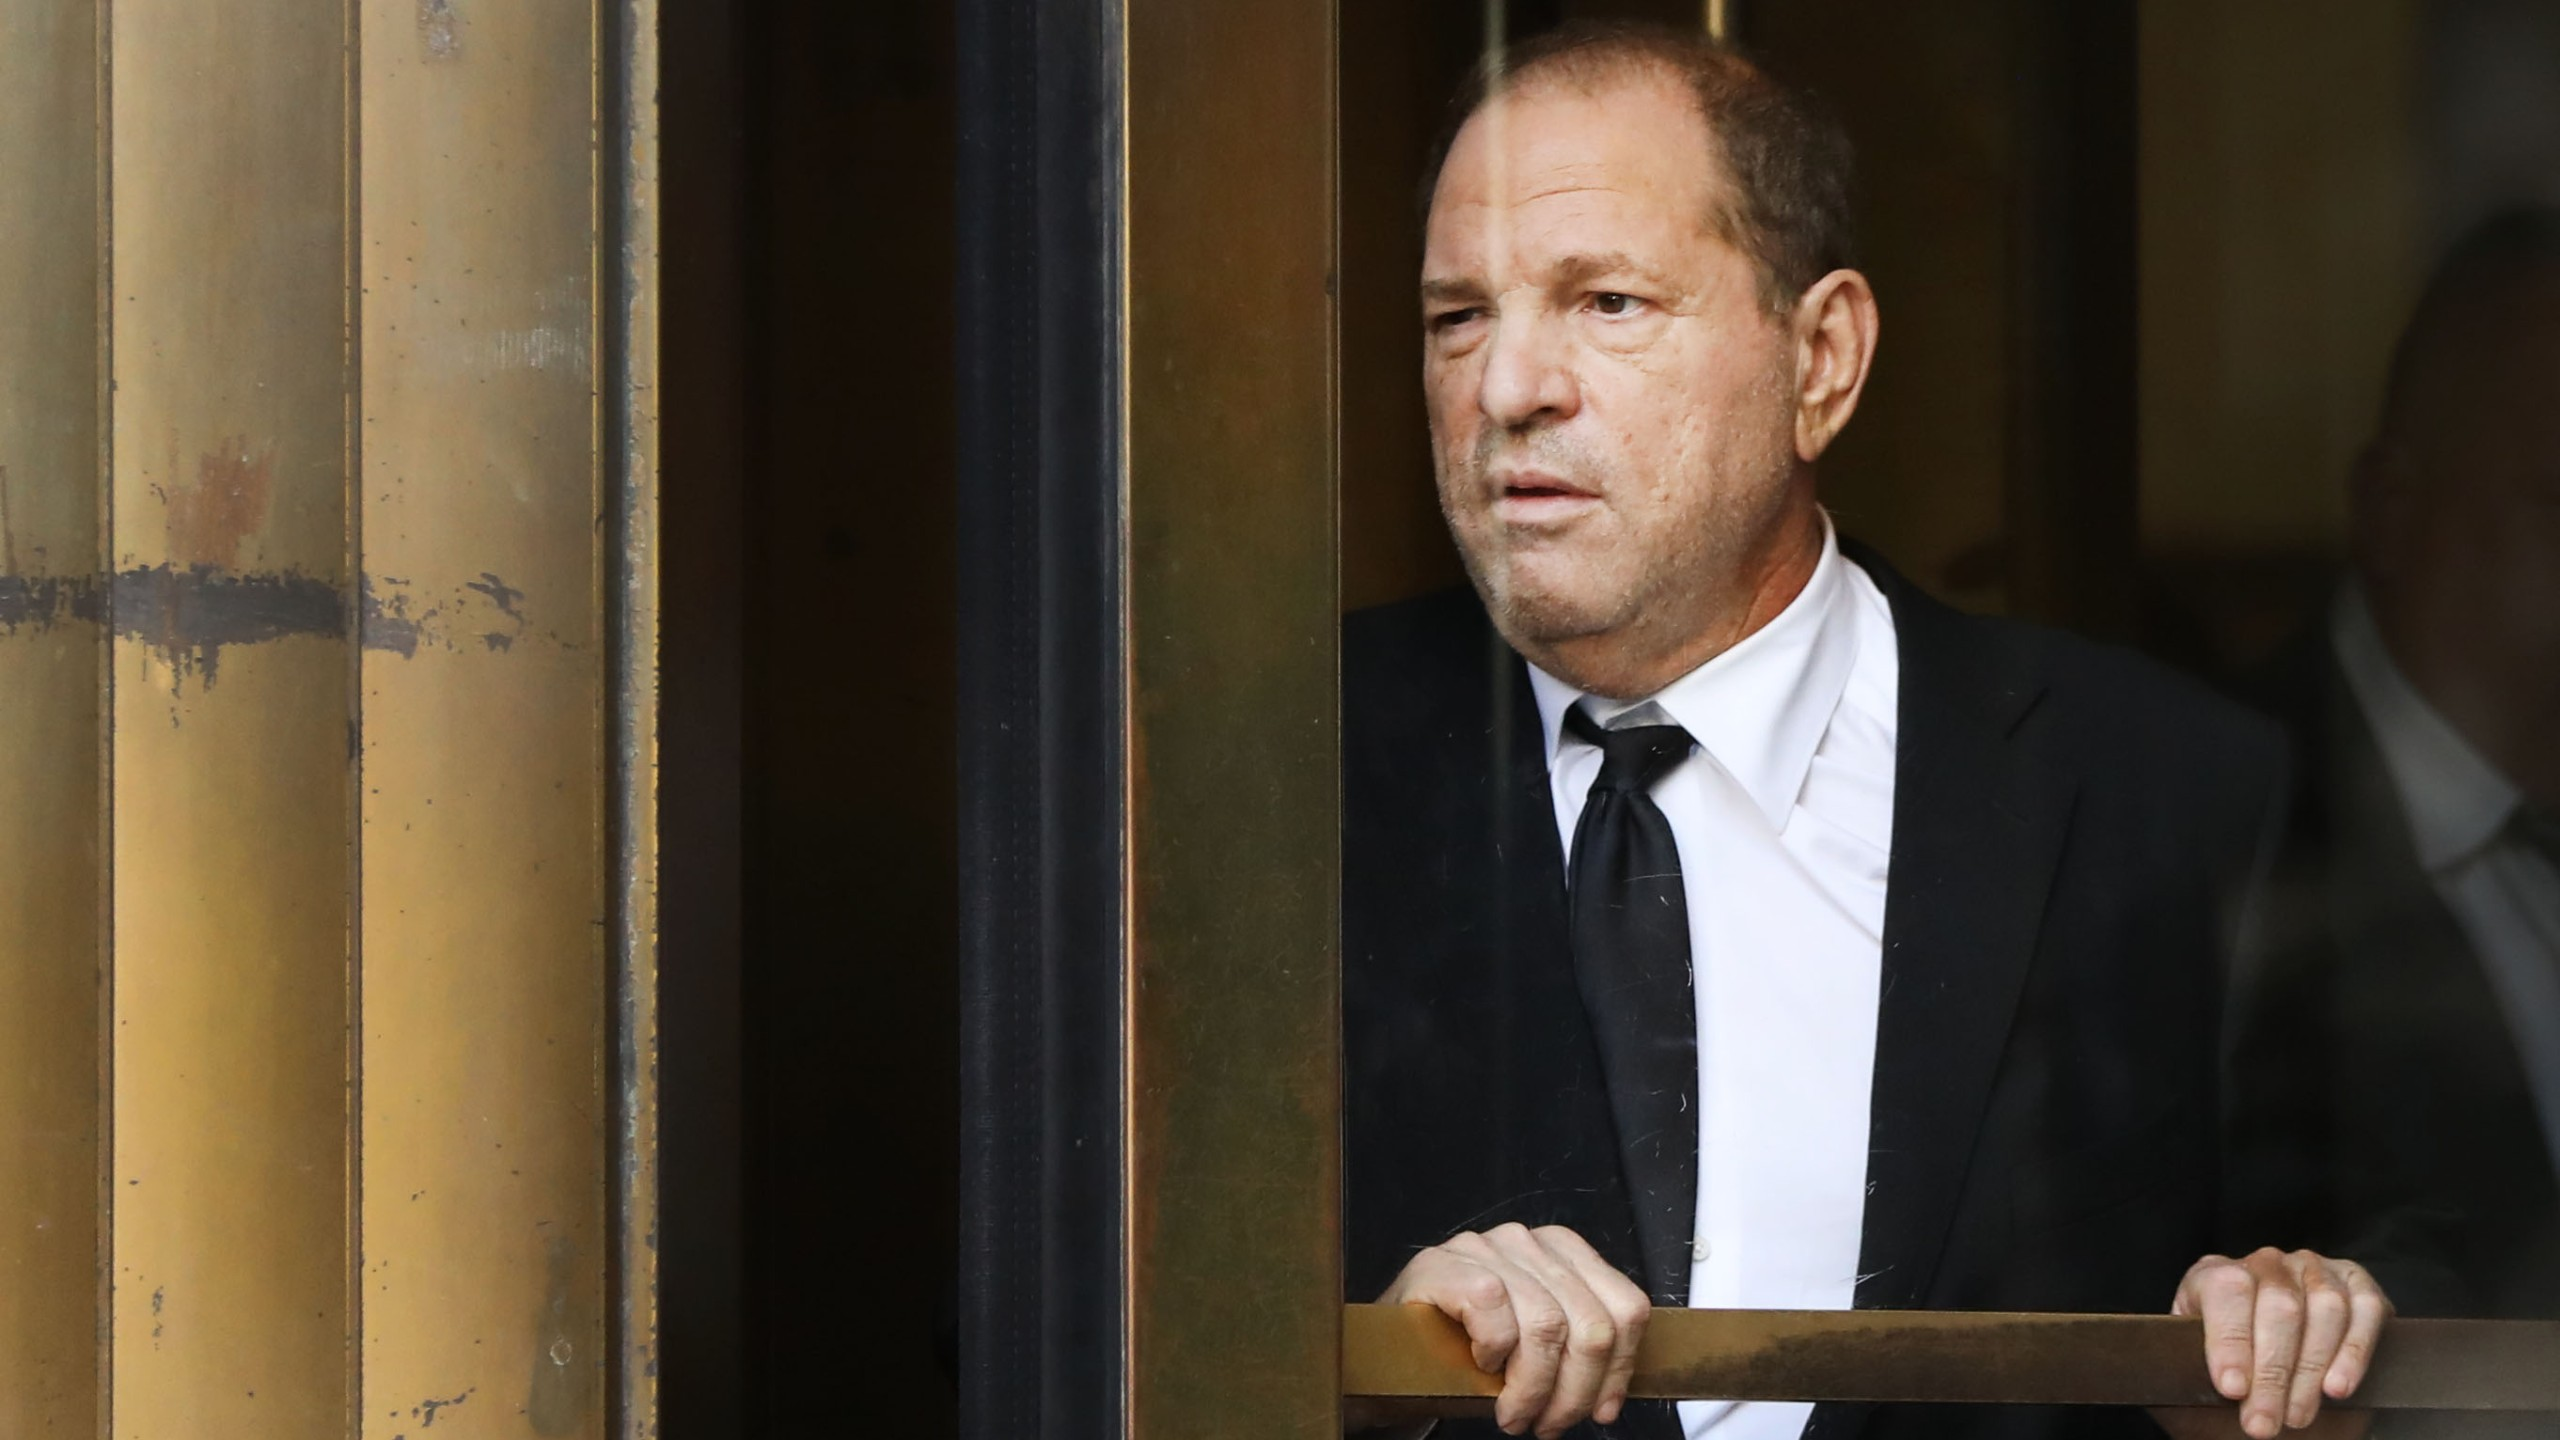 Harvey Weinstein exits court in New York City following his arraignment in a new sexual assault indictment on Aug. 26, 2019. (Credit: Spencer Platt / Getty Images)